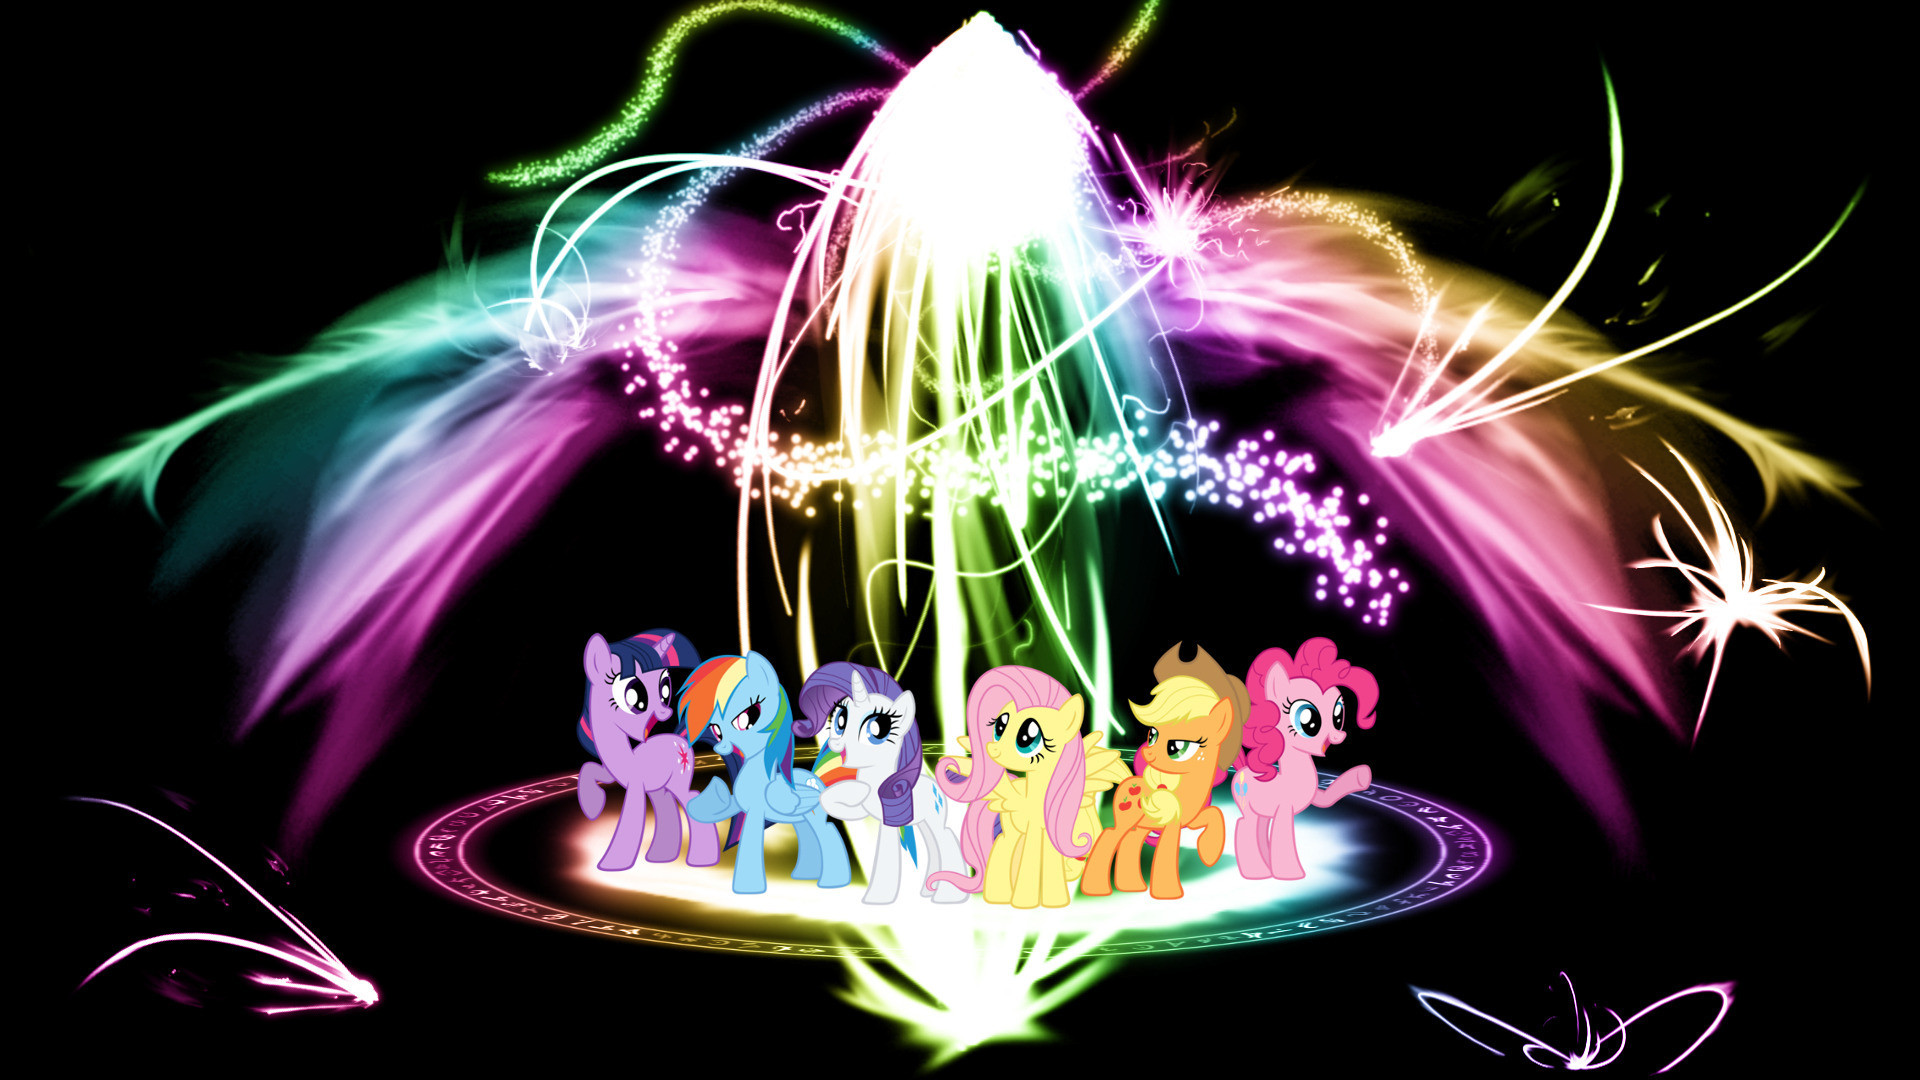 My Little Pony Friendship Is Magic HD Wallpapers Widescreen Wallpapers  Pictures Images #11395